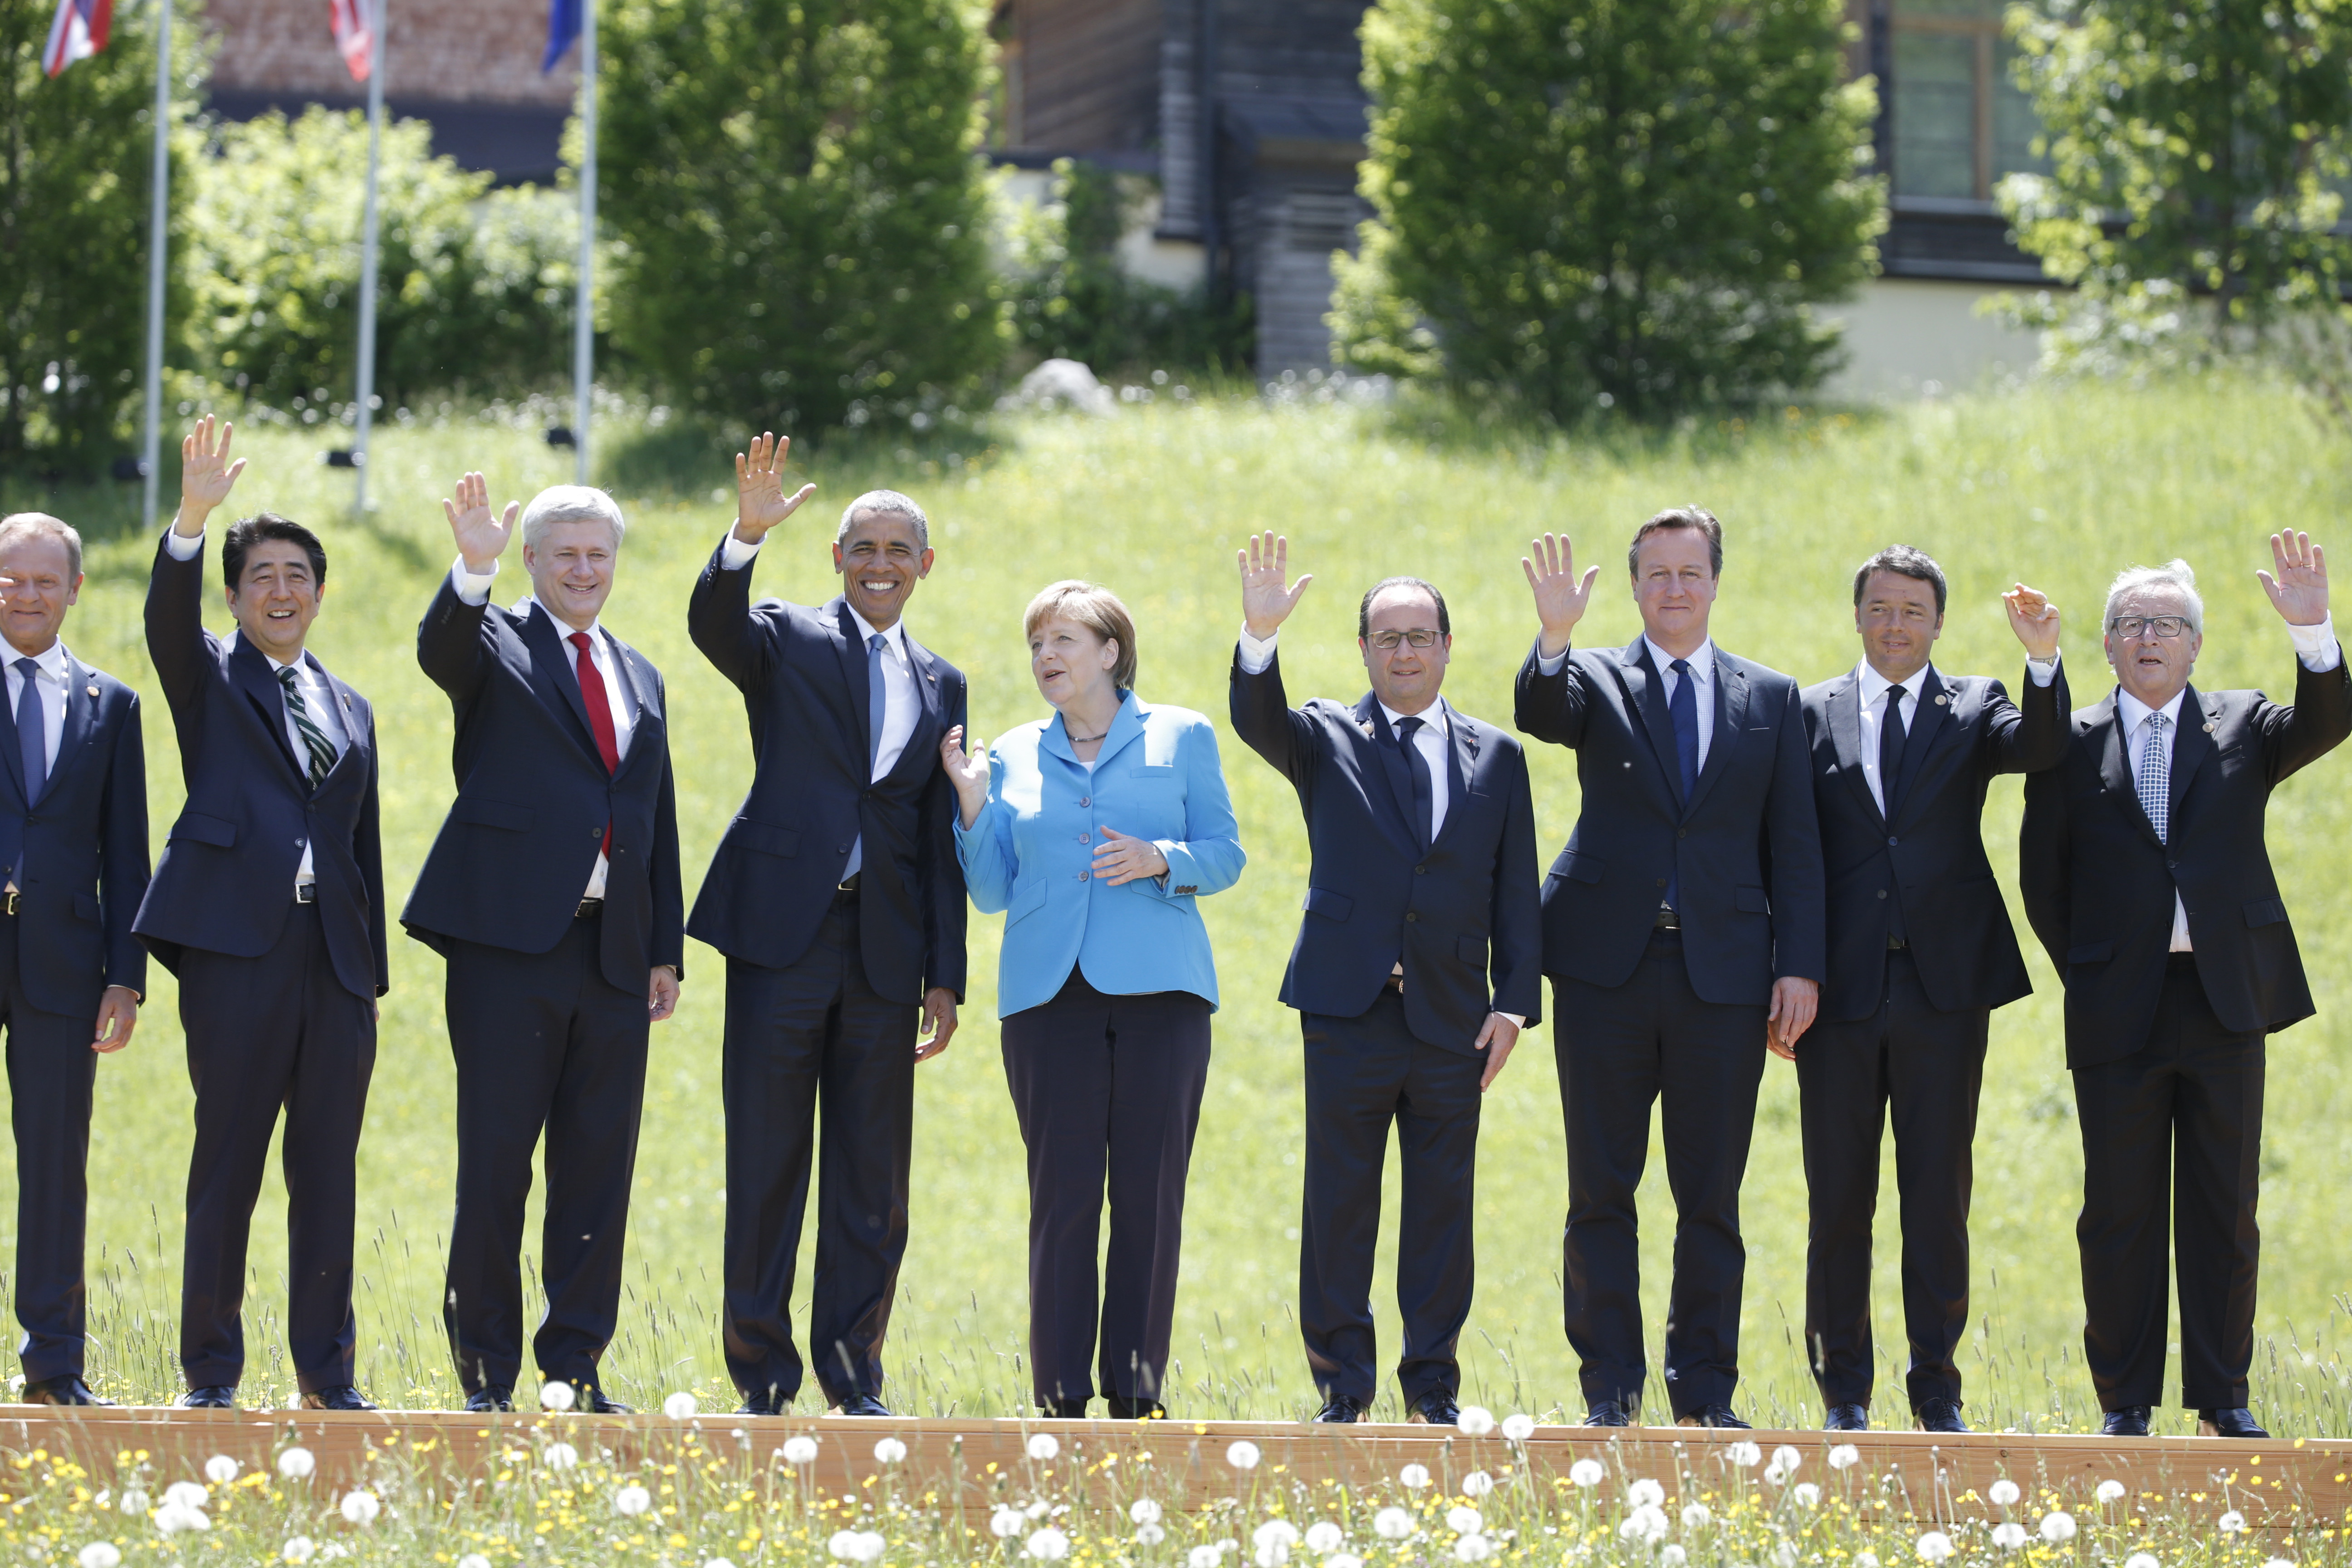 President of the European Council, Donald Tusk, Japanese Prime Minister Shinzo Abe,Canada's Prime Minister Stephen Harper, US President Barack Obama, German Chancellor Angela Merkel, French President Francois Hollande, British Prime Minister David Cameron, talian Prime Minister Matteo Renzi  and European Commission President Jean-Claude Junker (L-R) wave hands as they pose for a family photo during their meeting at the hotel castle Elmau in Kruen, Germany, June 7, 2015. Leaders from the Group of Seven (G7) industrial nations met on Sunday in the Bavarian Alps for a summit overshadowed by Greece's debt crisis and ongoing violence in Ukraine.  REUTERS/Christian Hartmann   - LR1EB670XMIMA